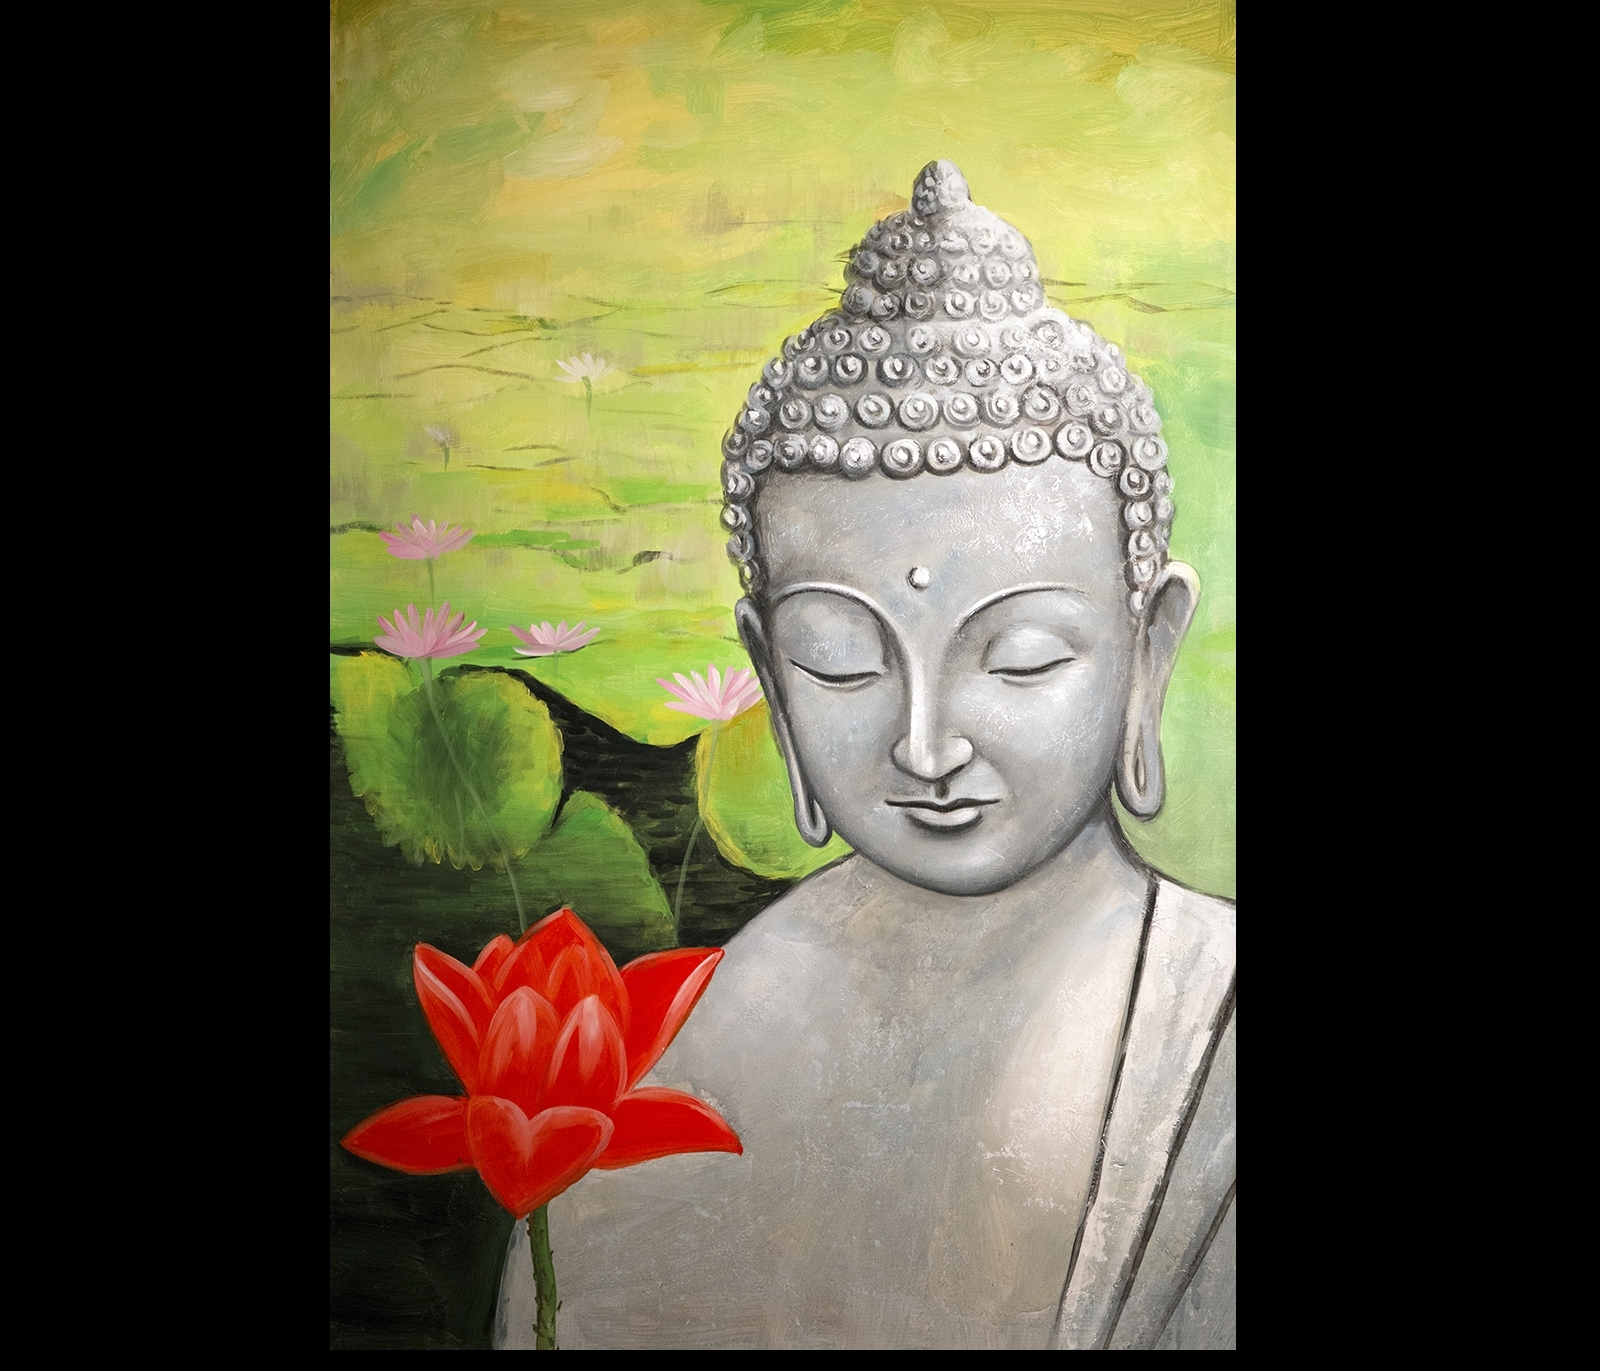 Zen Buddha Art Modern Wall Decor Buddha Painting Abstract Canvas Regarding Current Abstract Buddha Wall Art (View 19 of 20)